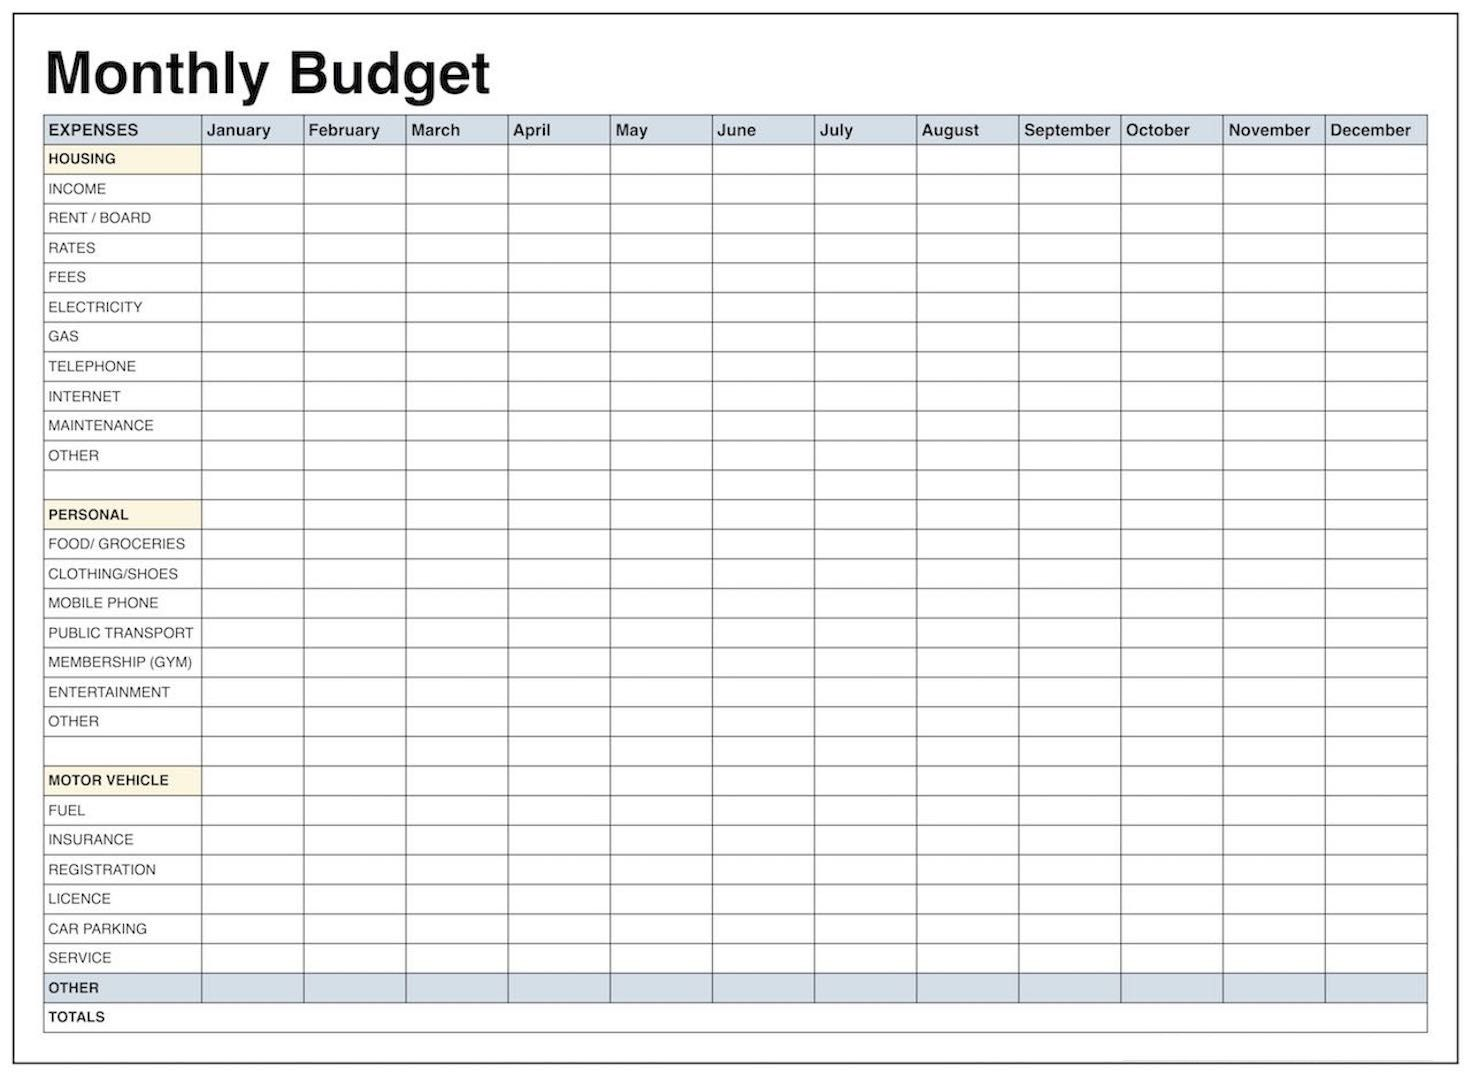 Blank Monthly Budget Template Pdf | Blank Templates | Budgeting